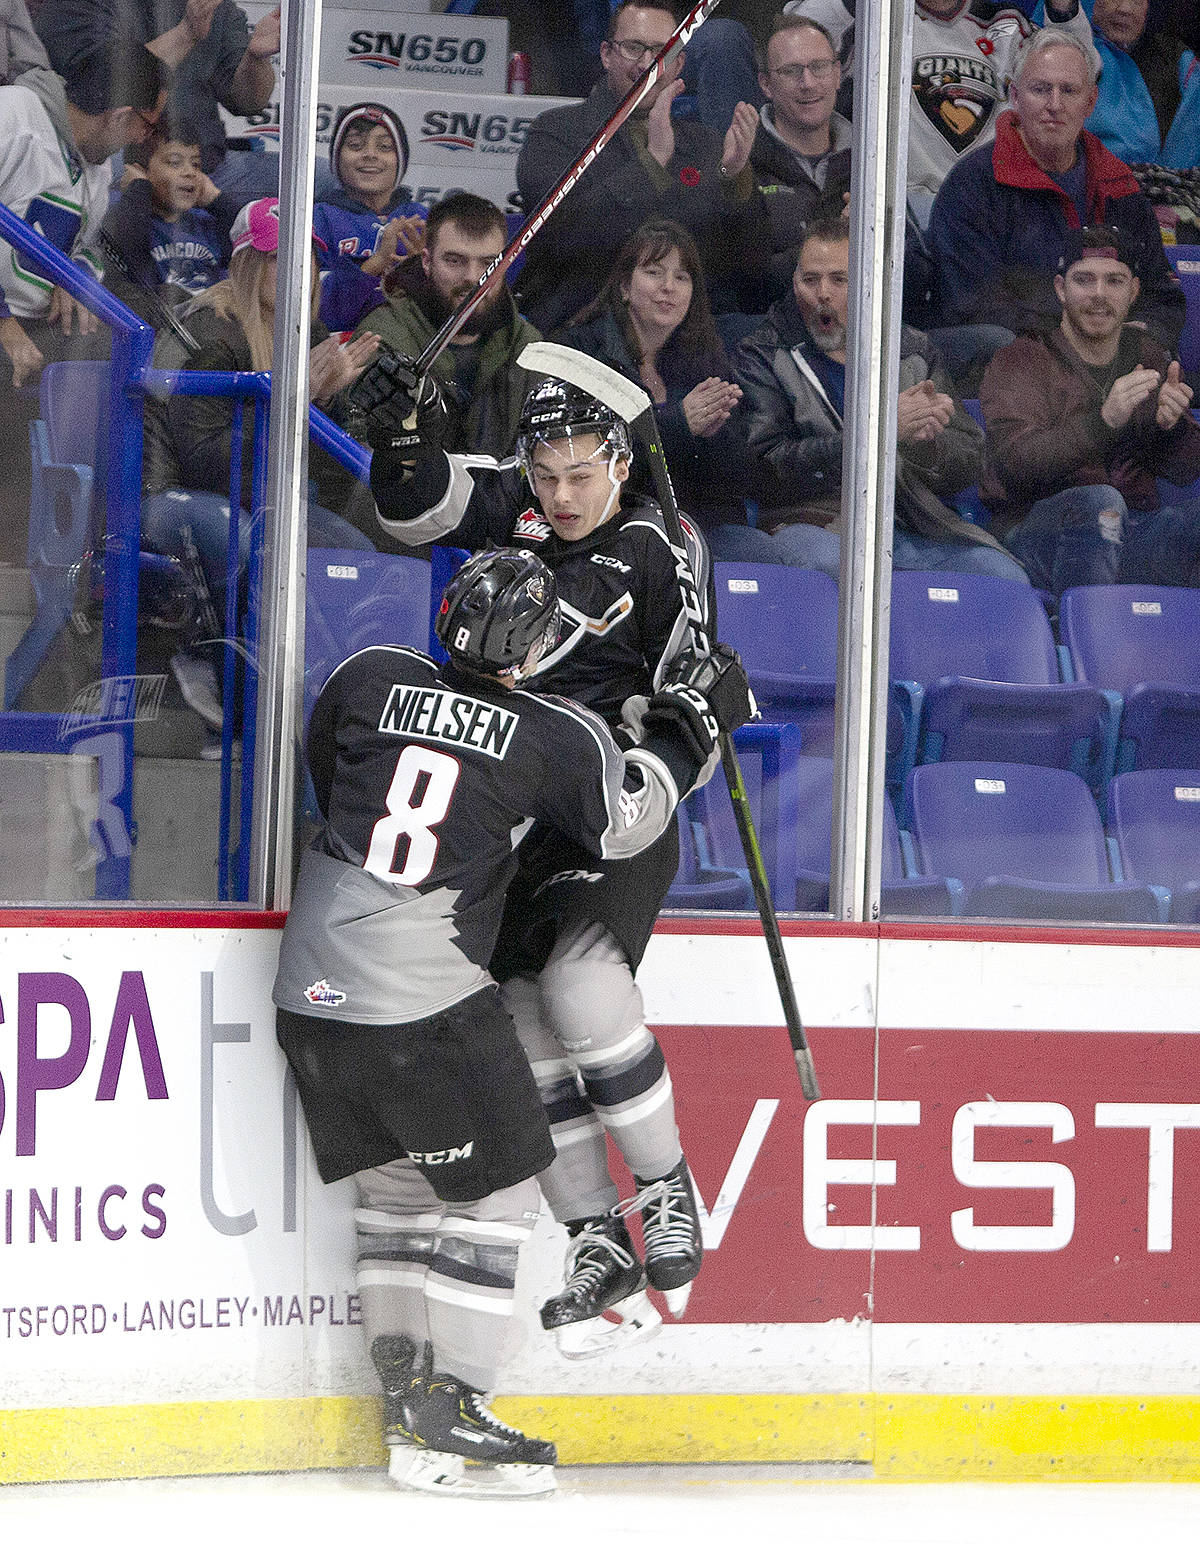 Vancouver Giants defeated the Winterhawks, 3-1, on home ice in Langley Friday night, now head to Portland for a rematch tonight (Saturday). Lucas Svejkovsky, Tanner Brown, and Evan Patrician scored a goal apiece while Trent Miner made 26 saves. (Chris Relke/Vancouver Giants)